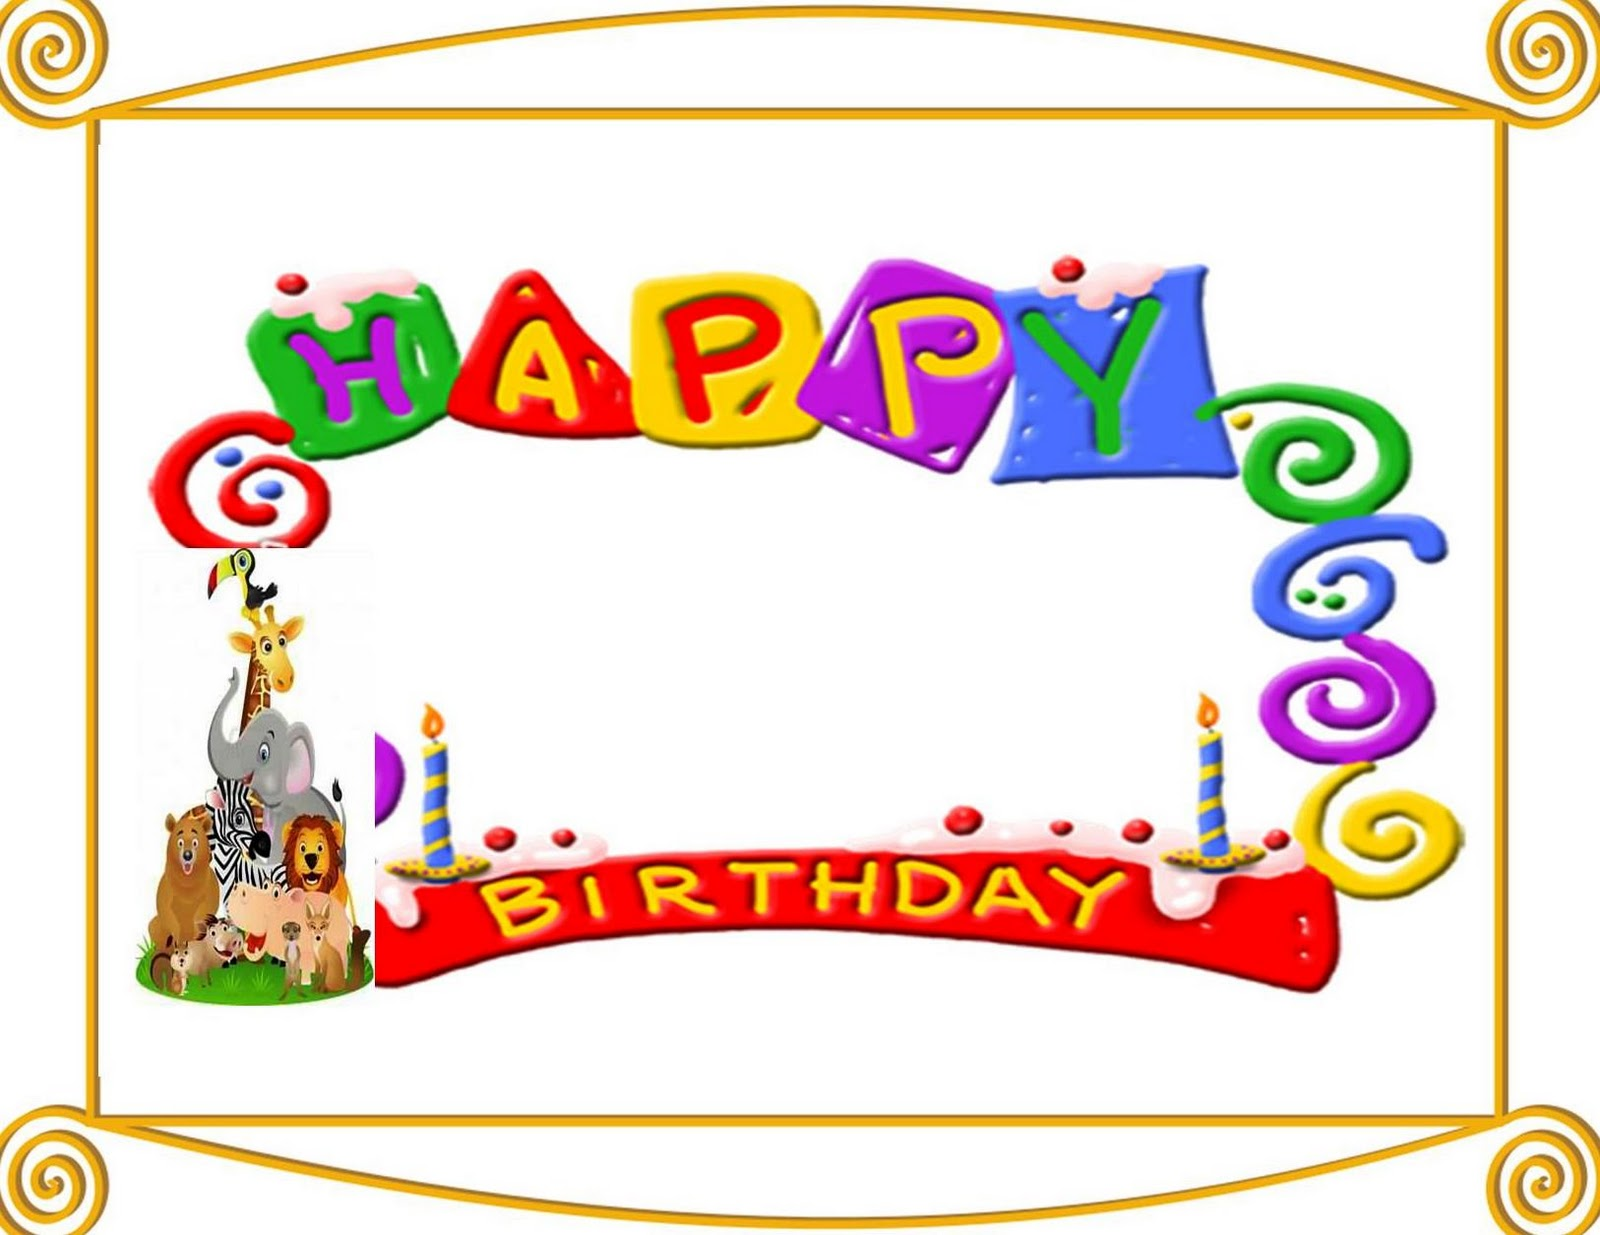 free birthday borders for invitations ; Beautiful_Birthday_Border_Clip_Art